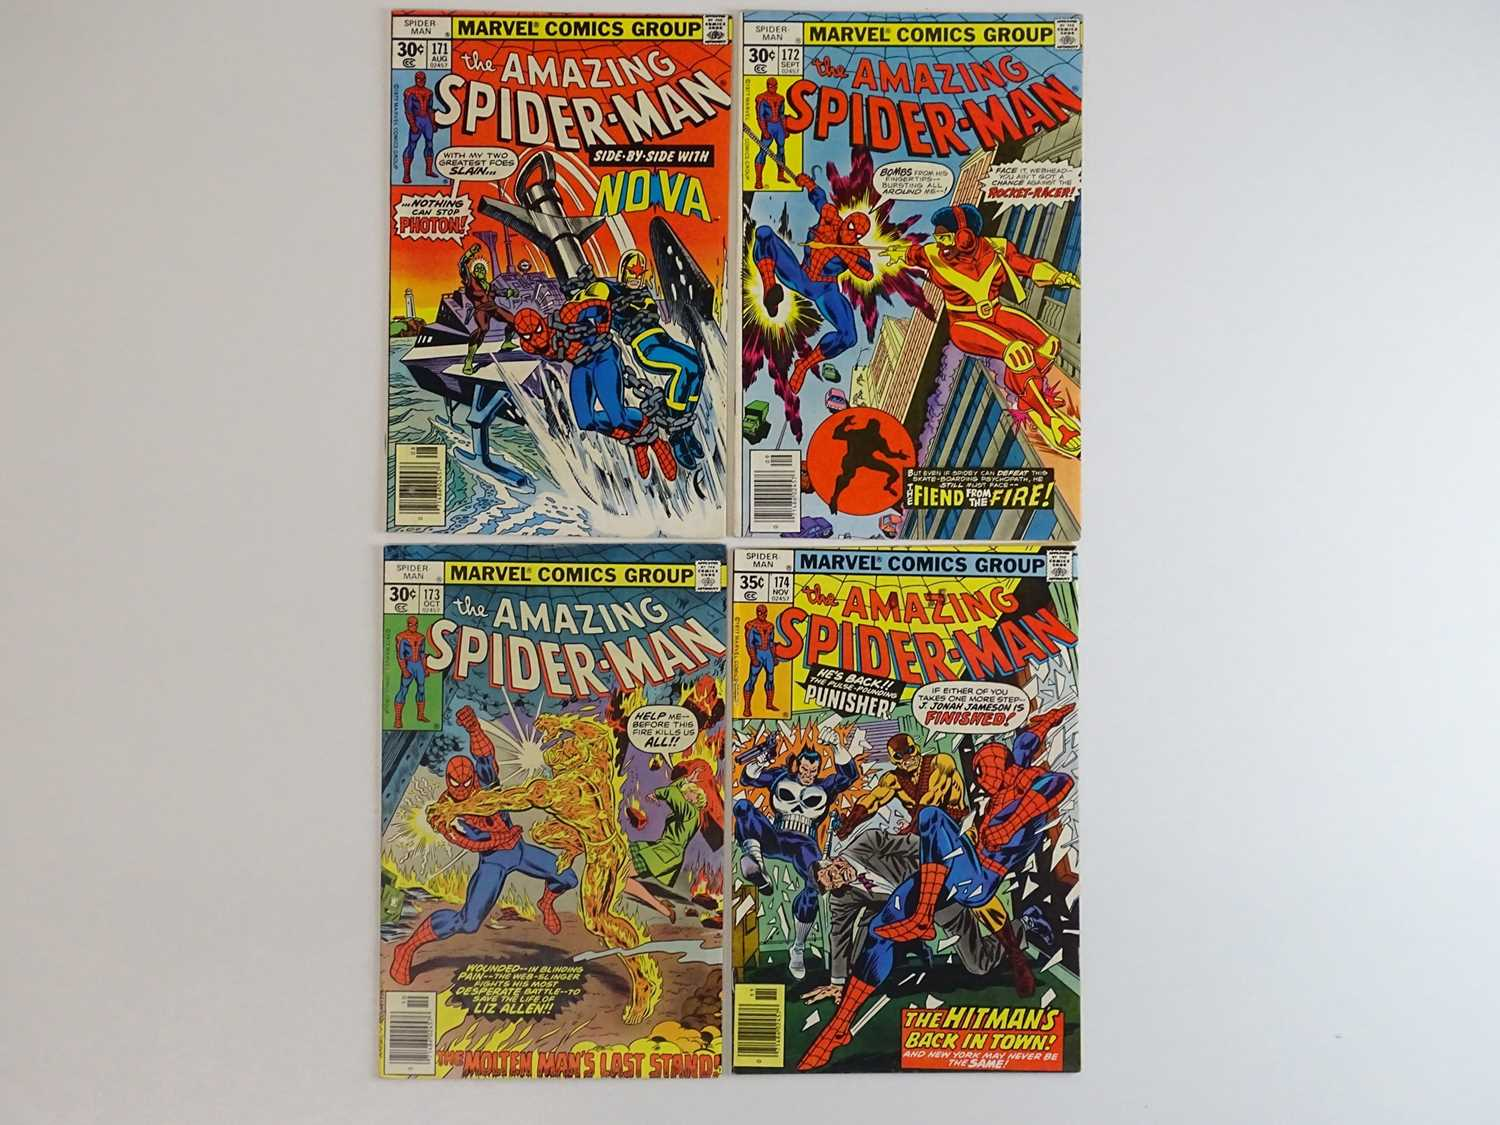 AMAZING SPIDER-MAN #171, 172, 173, 174 - (4 in Lot) - (1977 - MARVEL) - Includes First appearance of